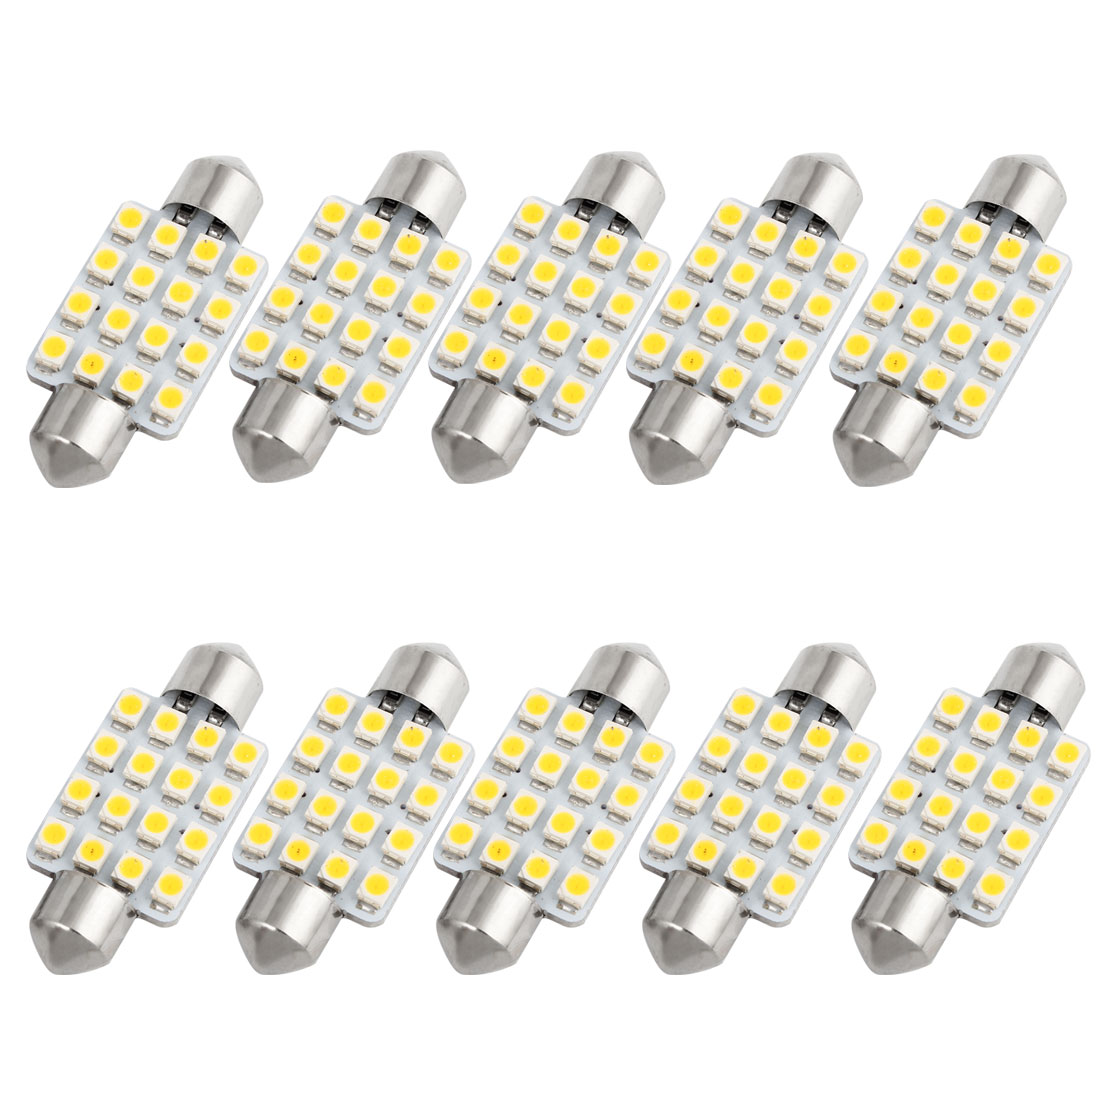 10PCS 1210 LED 16-SMD 39mm Warm White Festoon Dome Light 6423 6461 6418 Internal